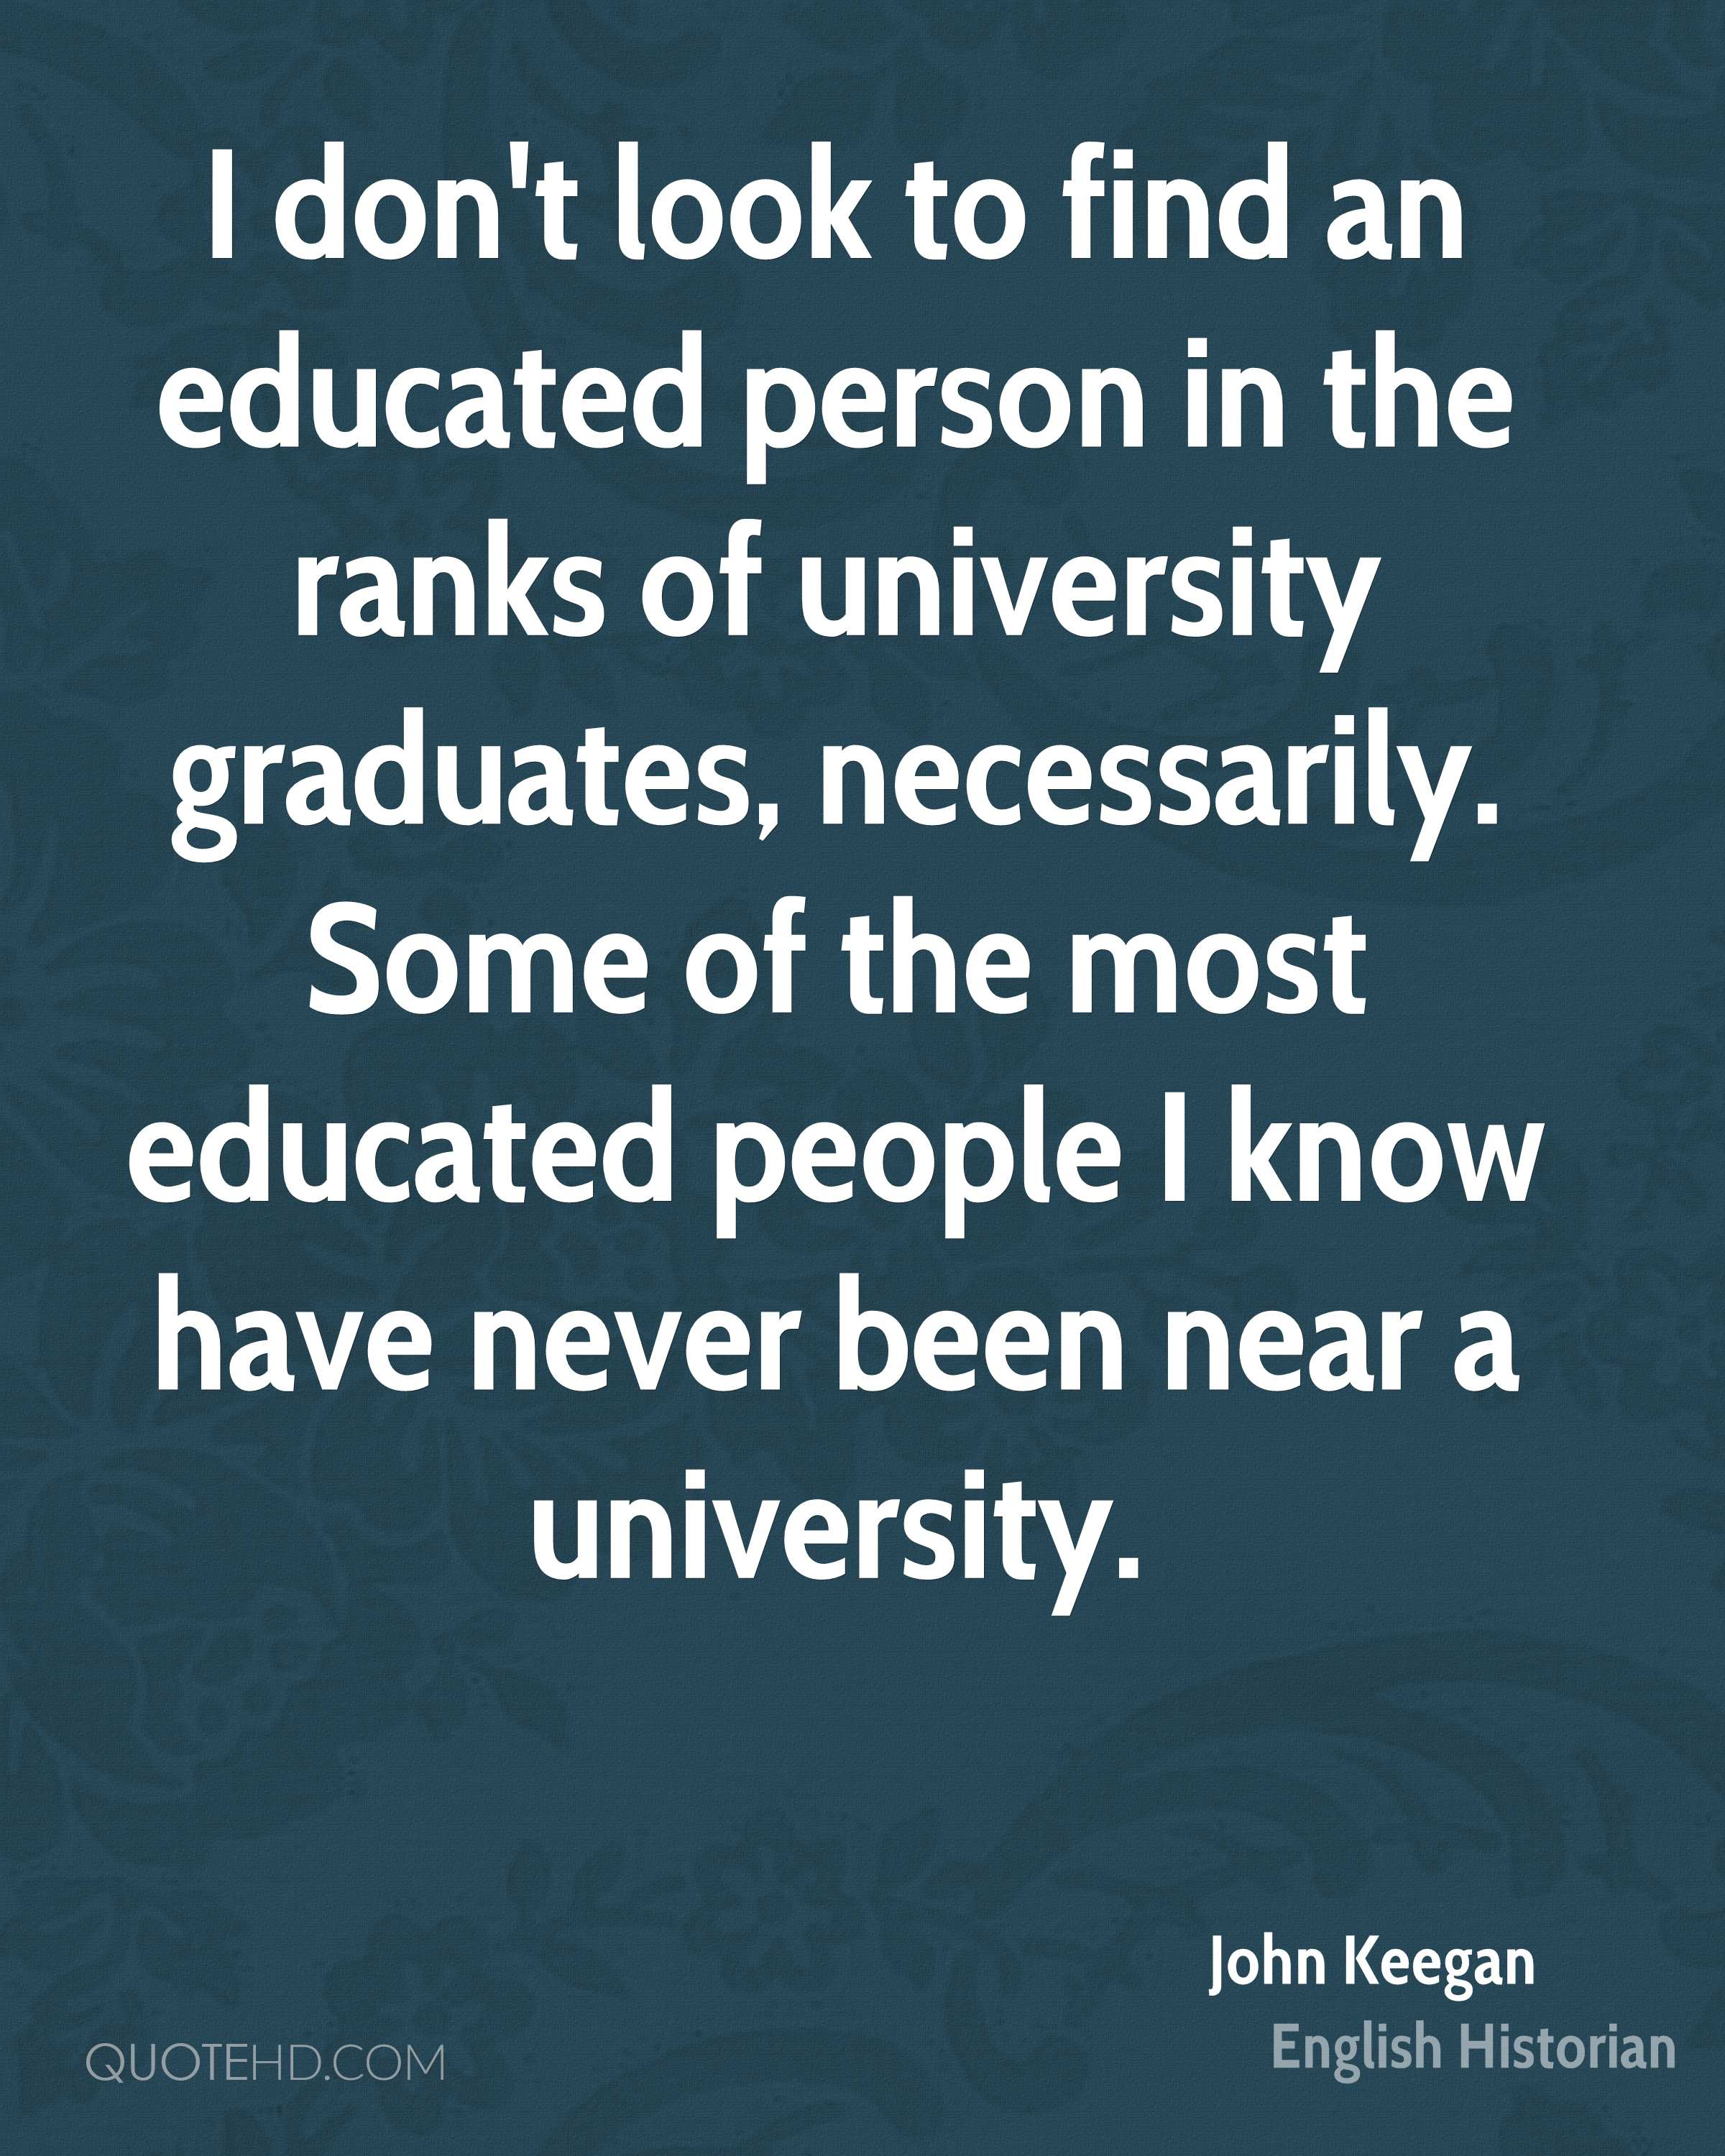 An Educated Person